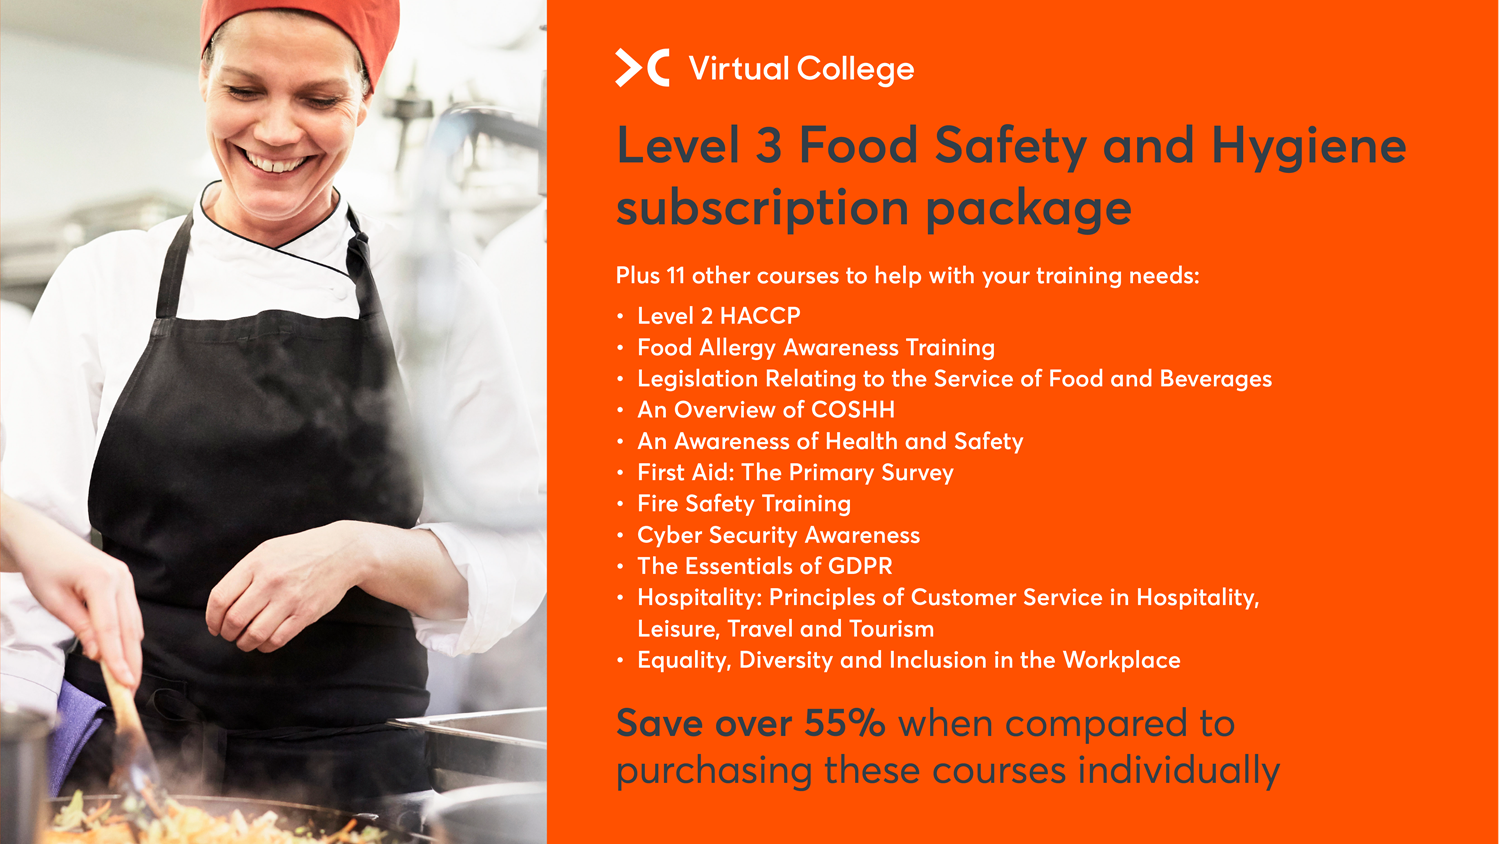 Level 3 Food Safety & Hygiene Course Package